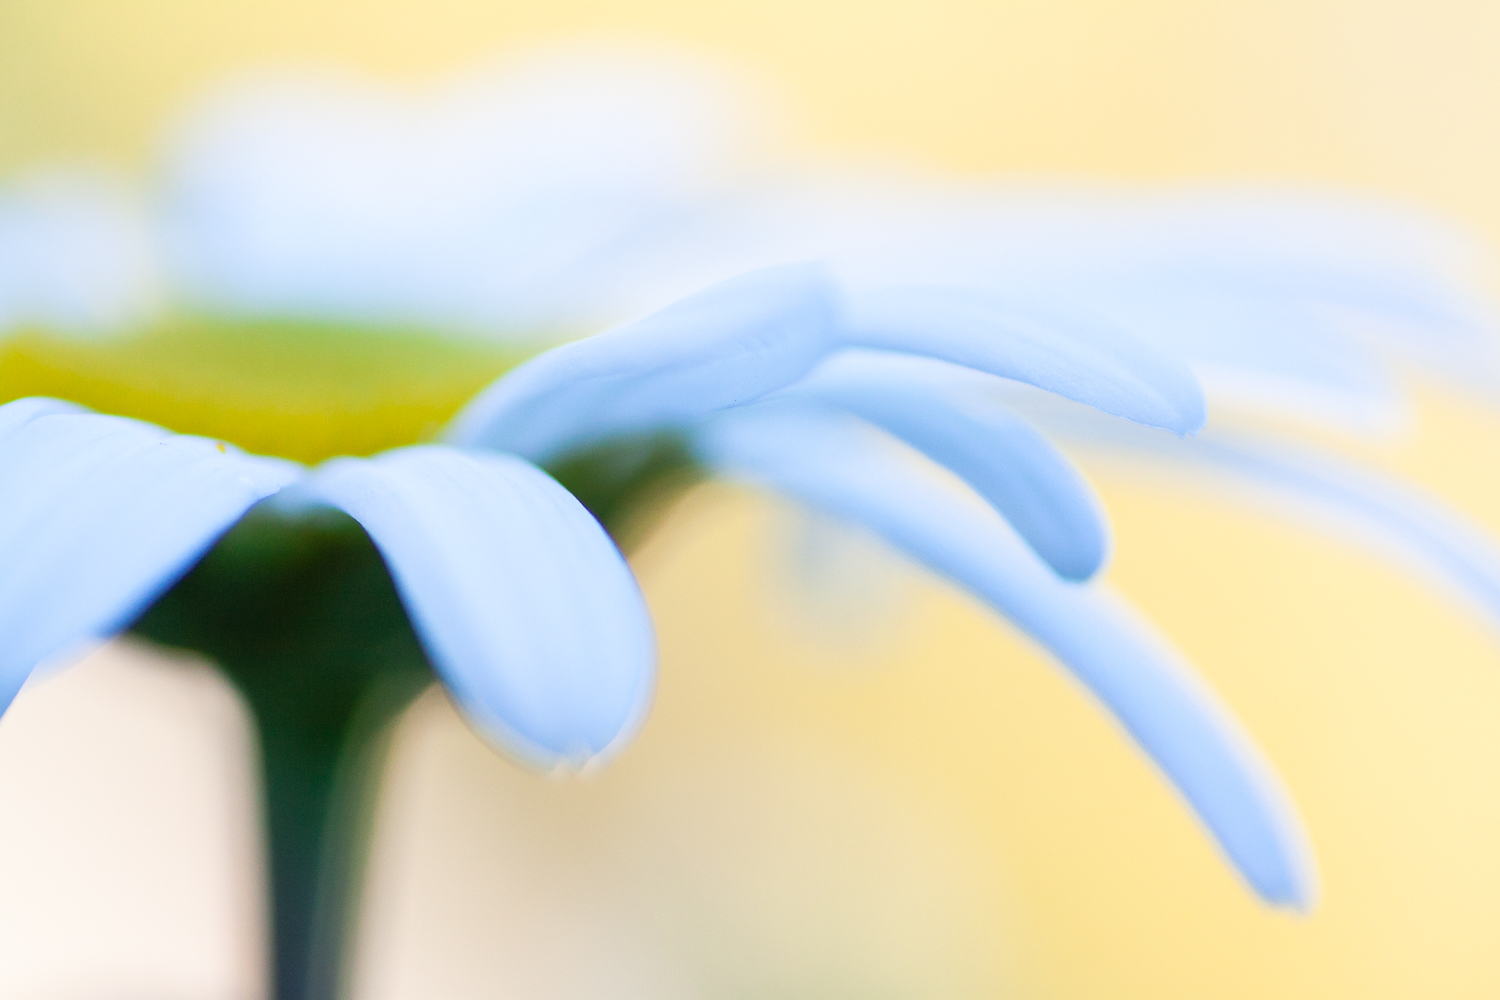 How to Take the Perfect Macro Photo (Step-By-Step Guide)